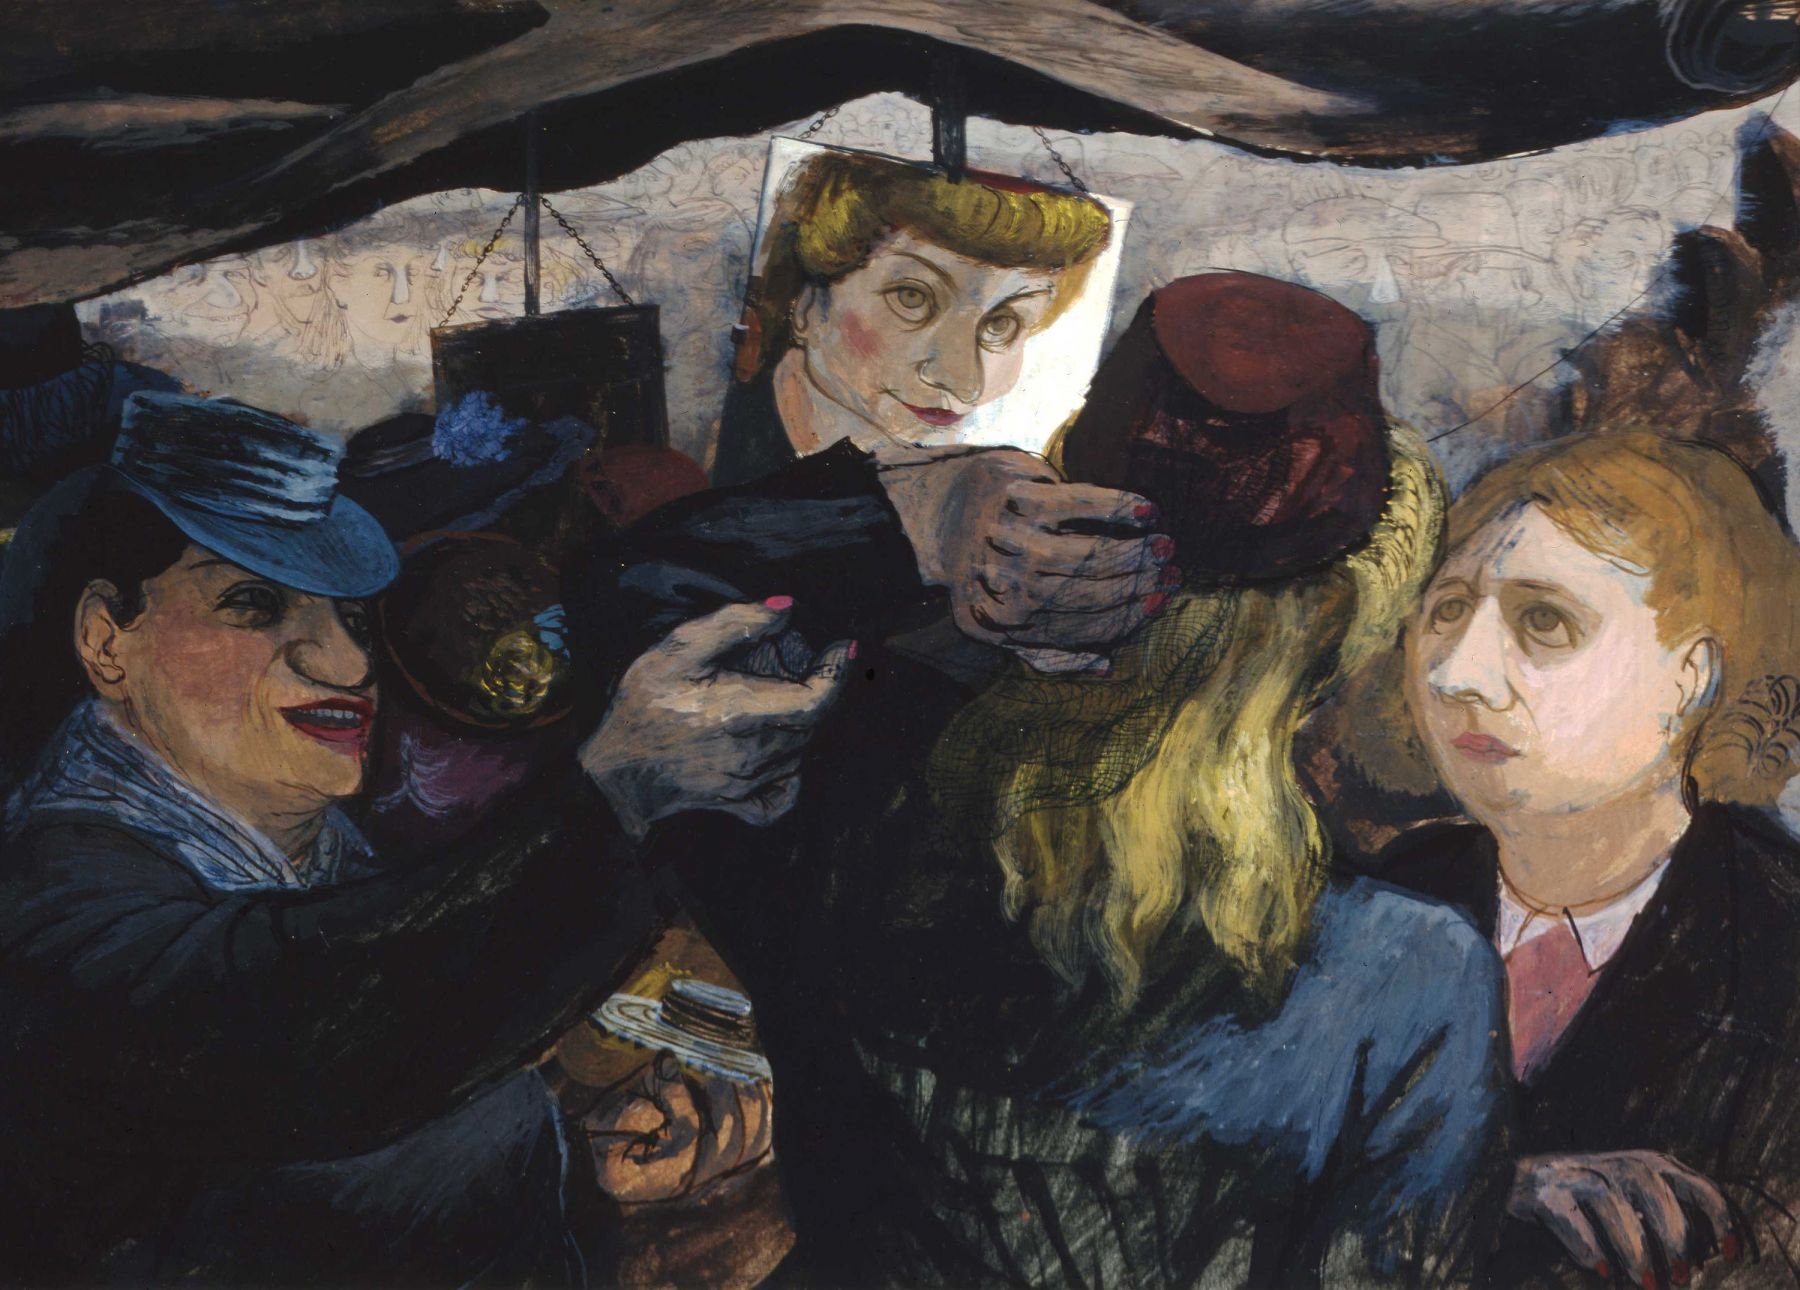 Henry Koerner, Hat Shoppers, 1945, oil on paper, 11 1/2 x 16 1/2 inches